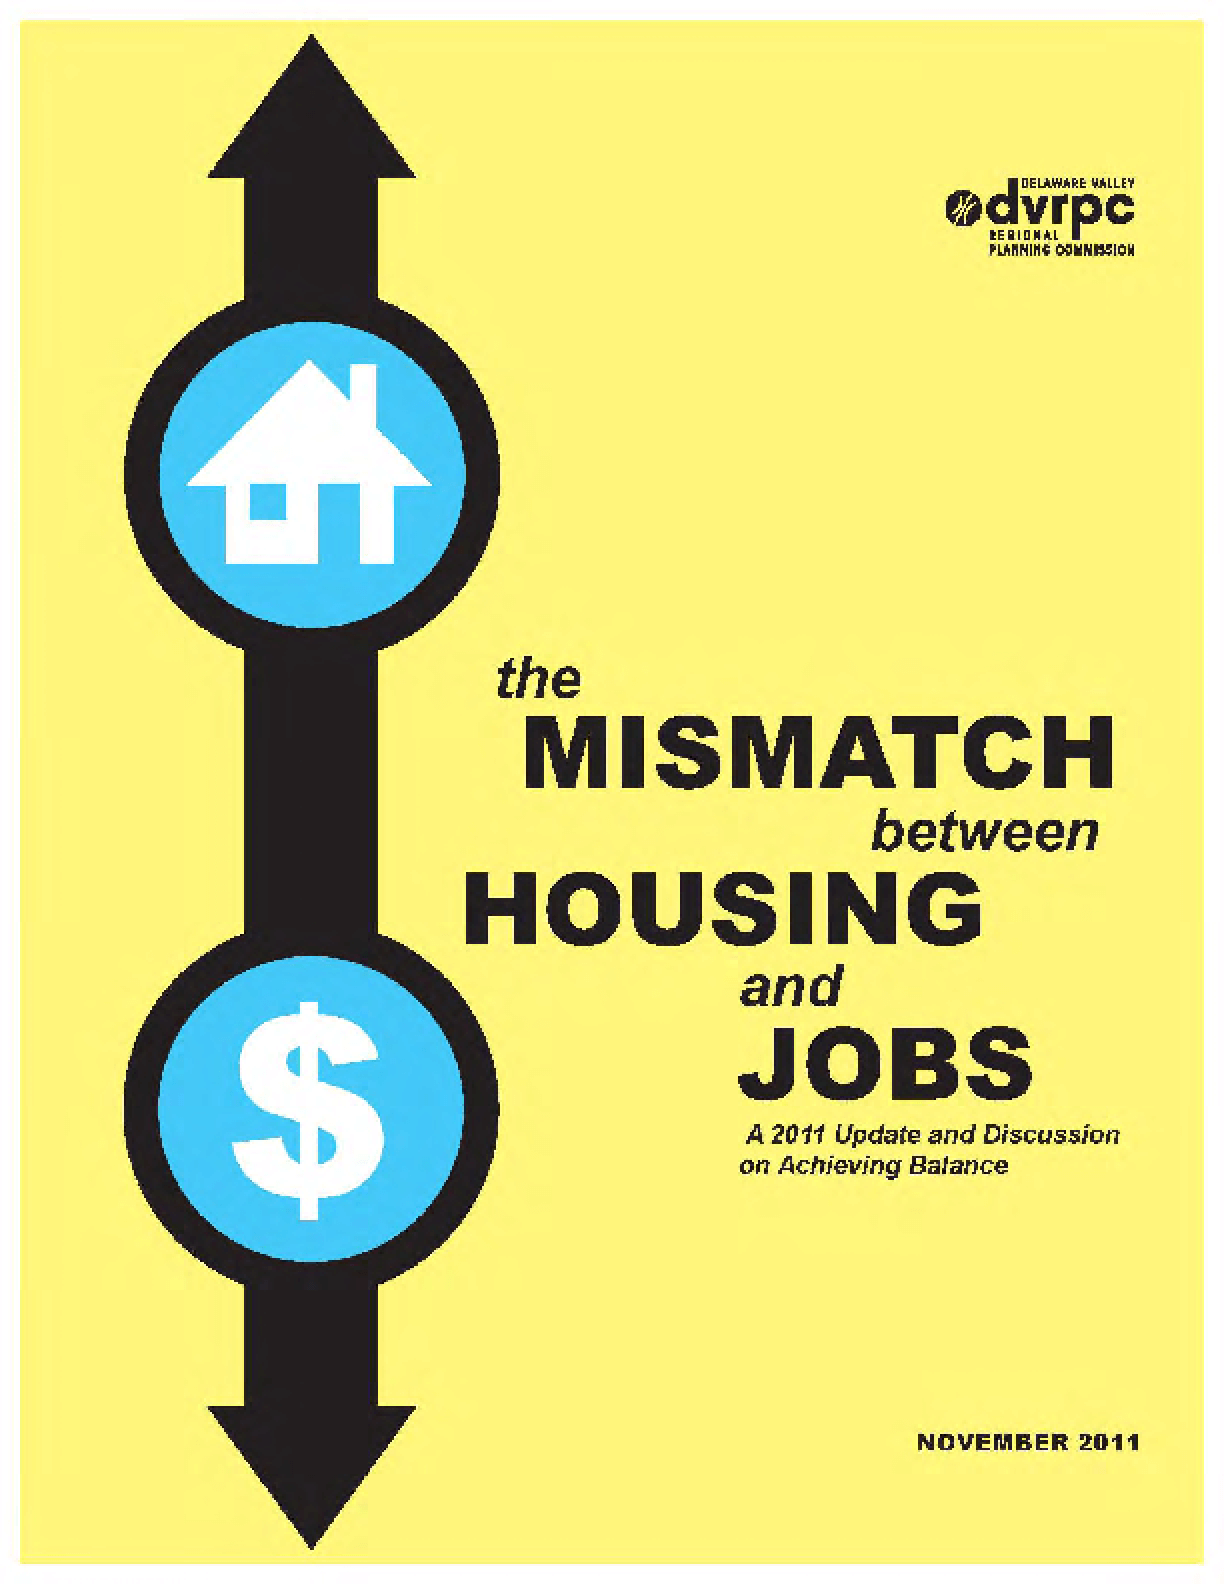 The Mismatch between Housing and Jobs: A 2011 Update and Discussion on Achieving Balance